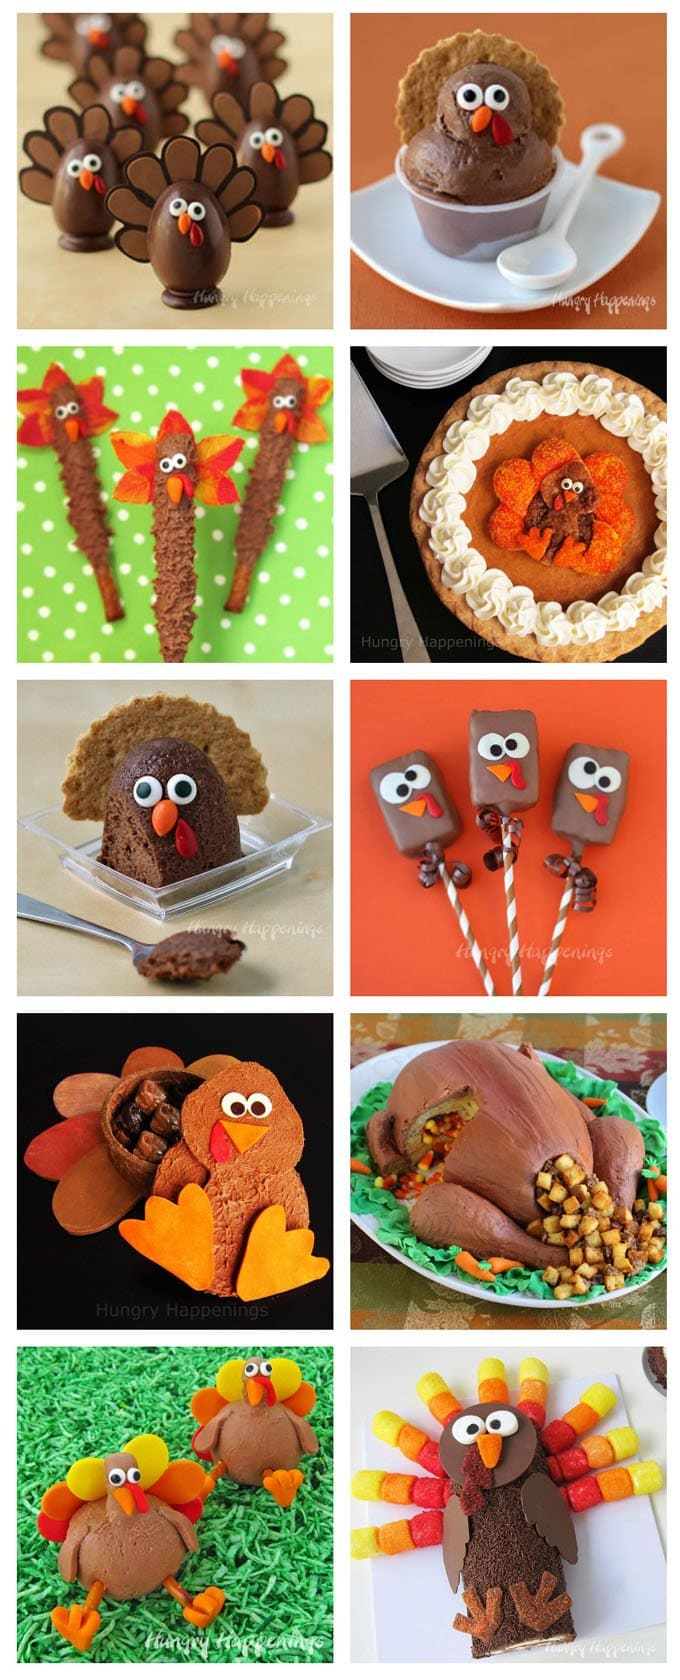 Dress up your Thanksgiving dessert table by serving some of these cute turkey themed treats. See all the tutorials at HungryHappenings.com.